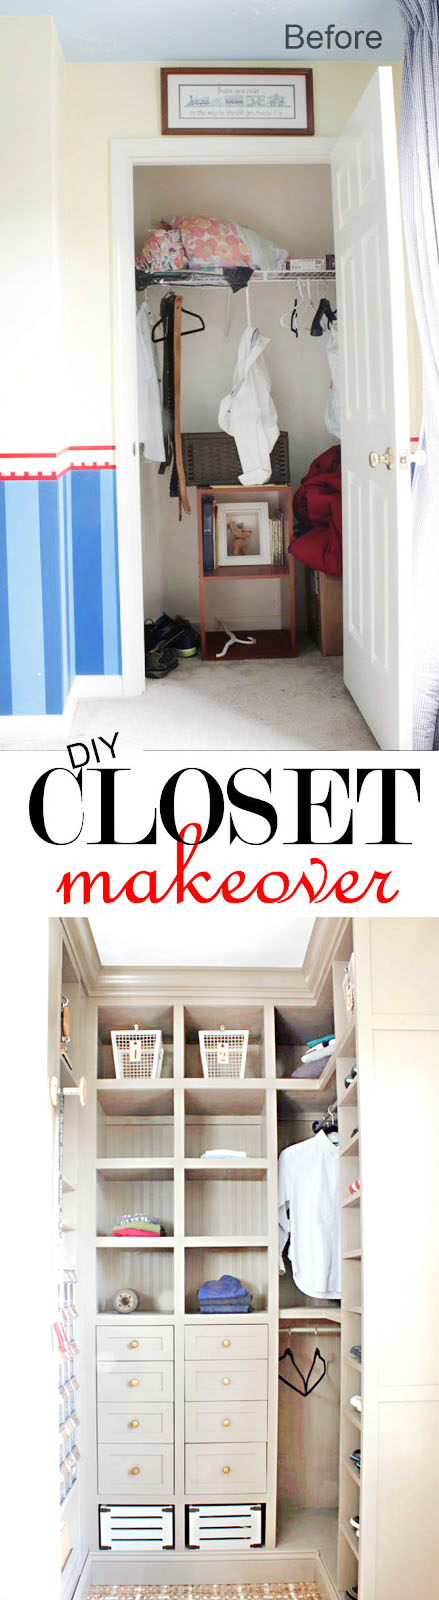 Boy room closet makeover - lots of storage added